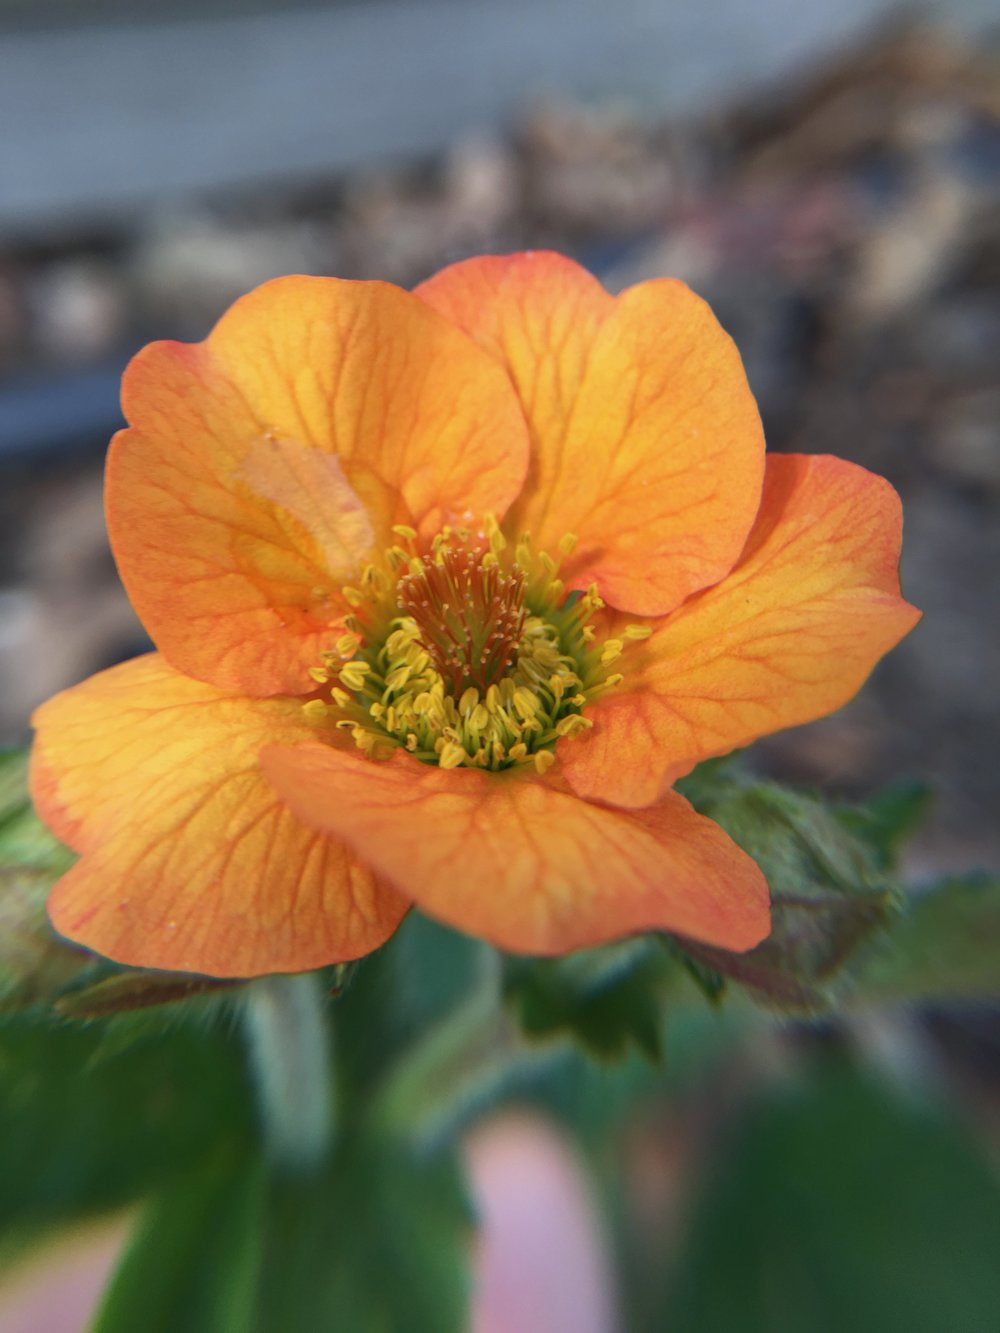 Geum coccineum  'Totally Tangerine' - planted last year, finally blooming